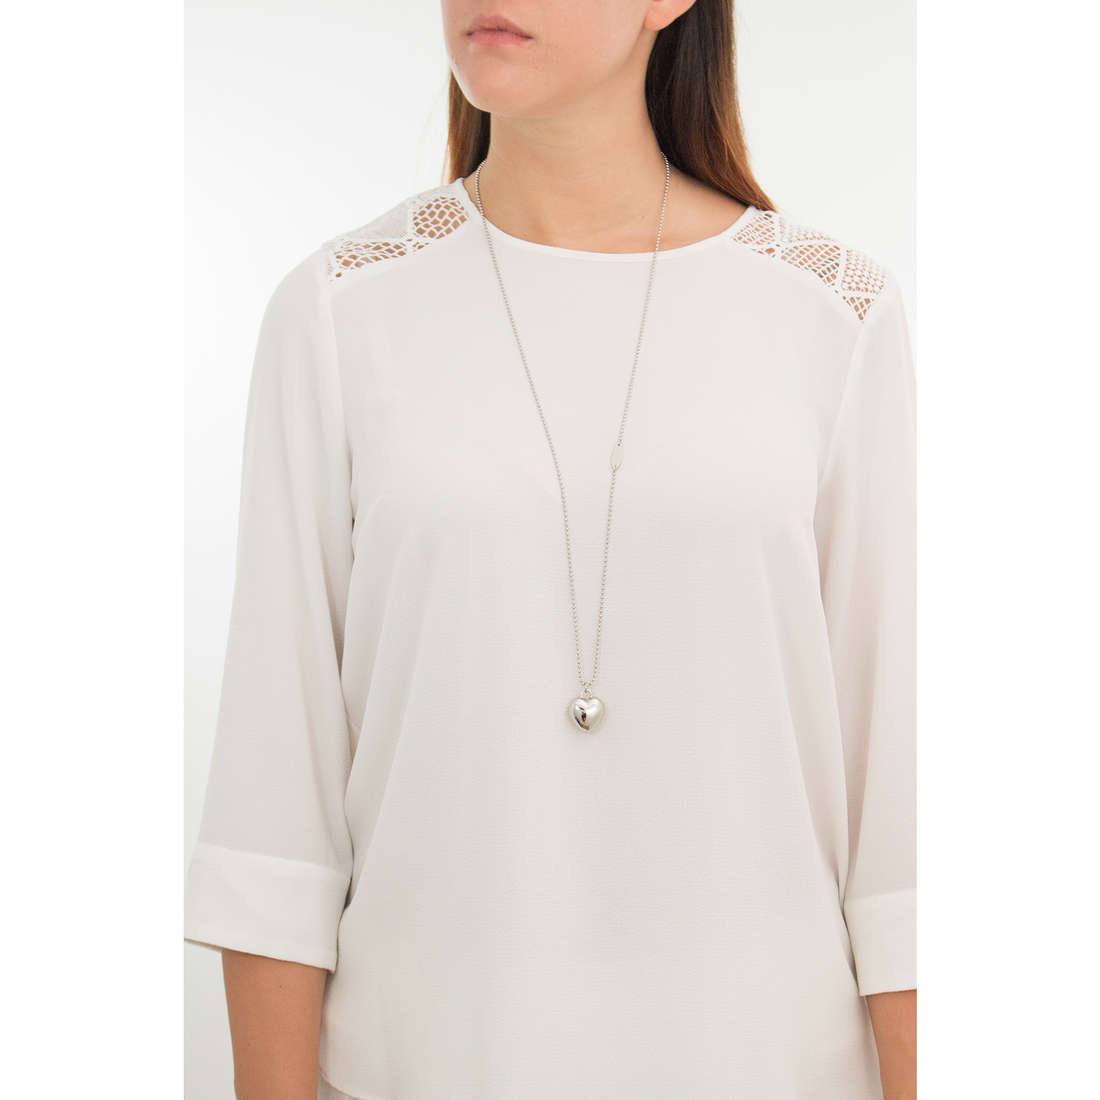 Luca Barra necklaces woman LBCK1063 indosso